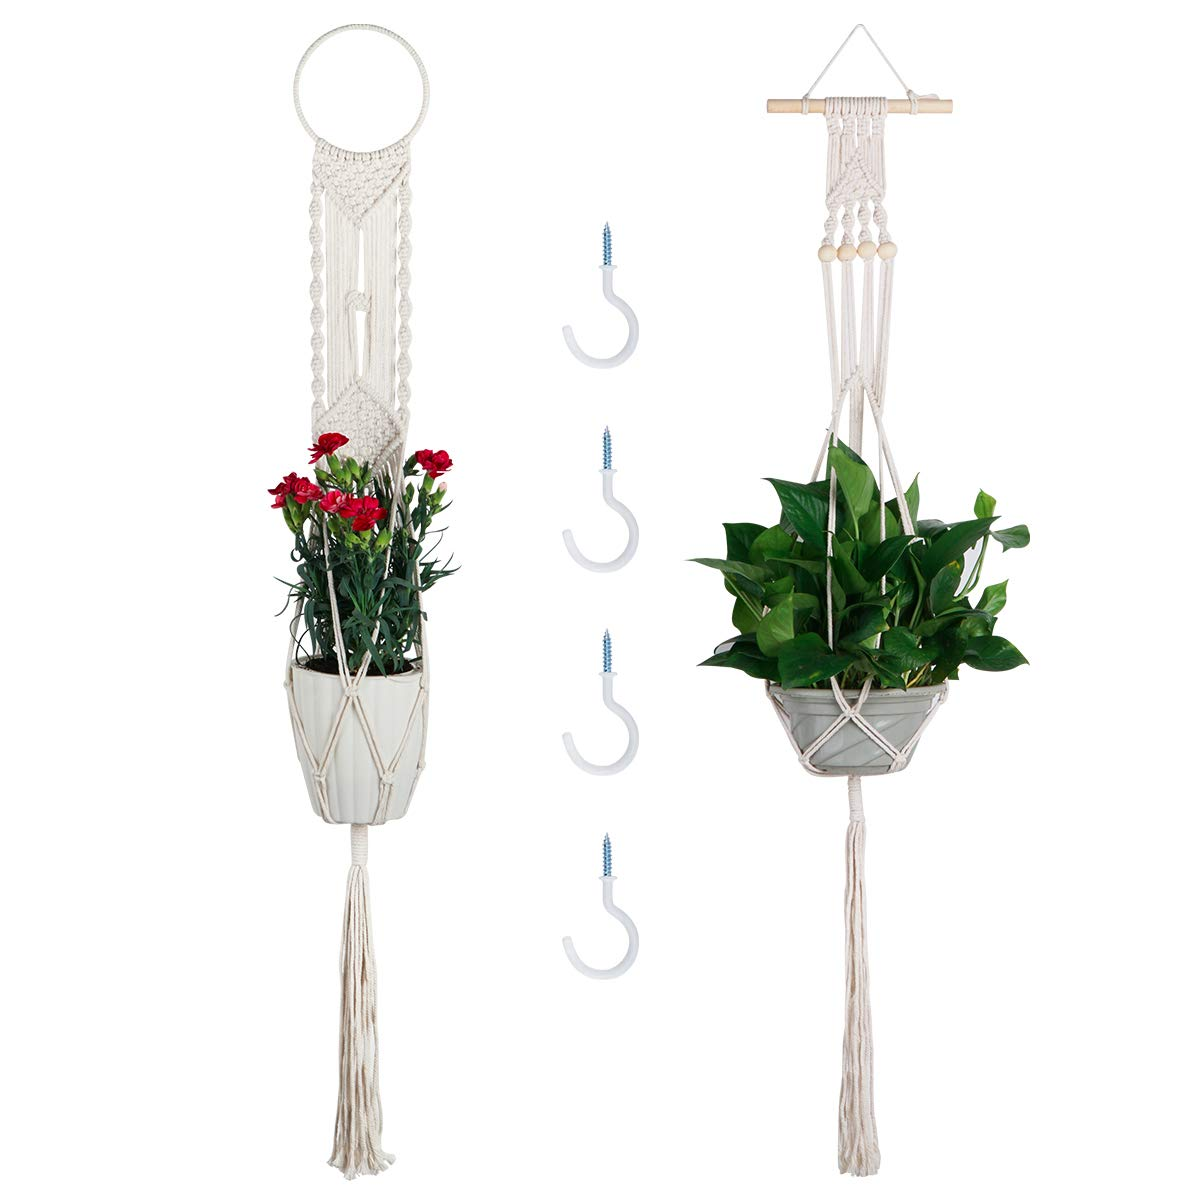 Macrame Plant Hangers, Vaincre 2 Set Hanging Planter with 4 Hooks, 43.3 Inch Wall Art Boho Home Decor 2, Cream White